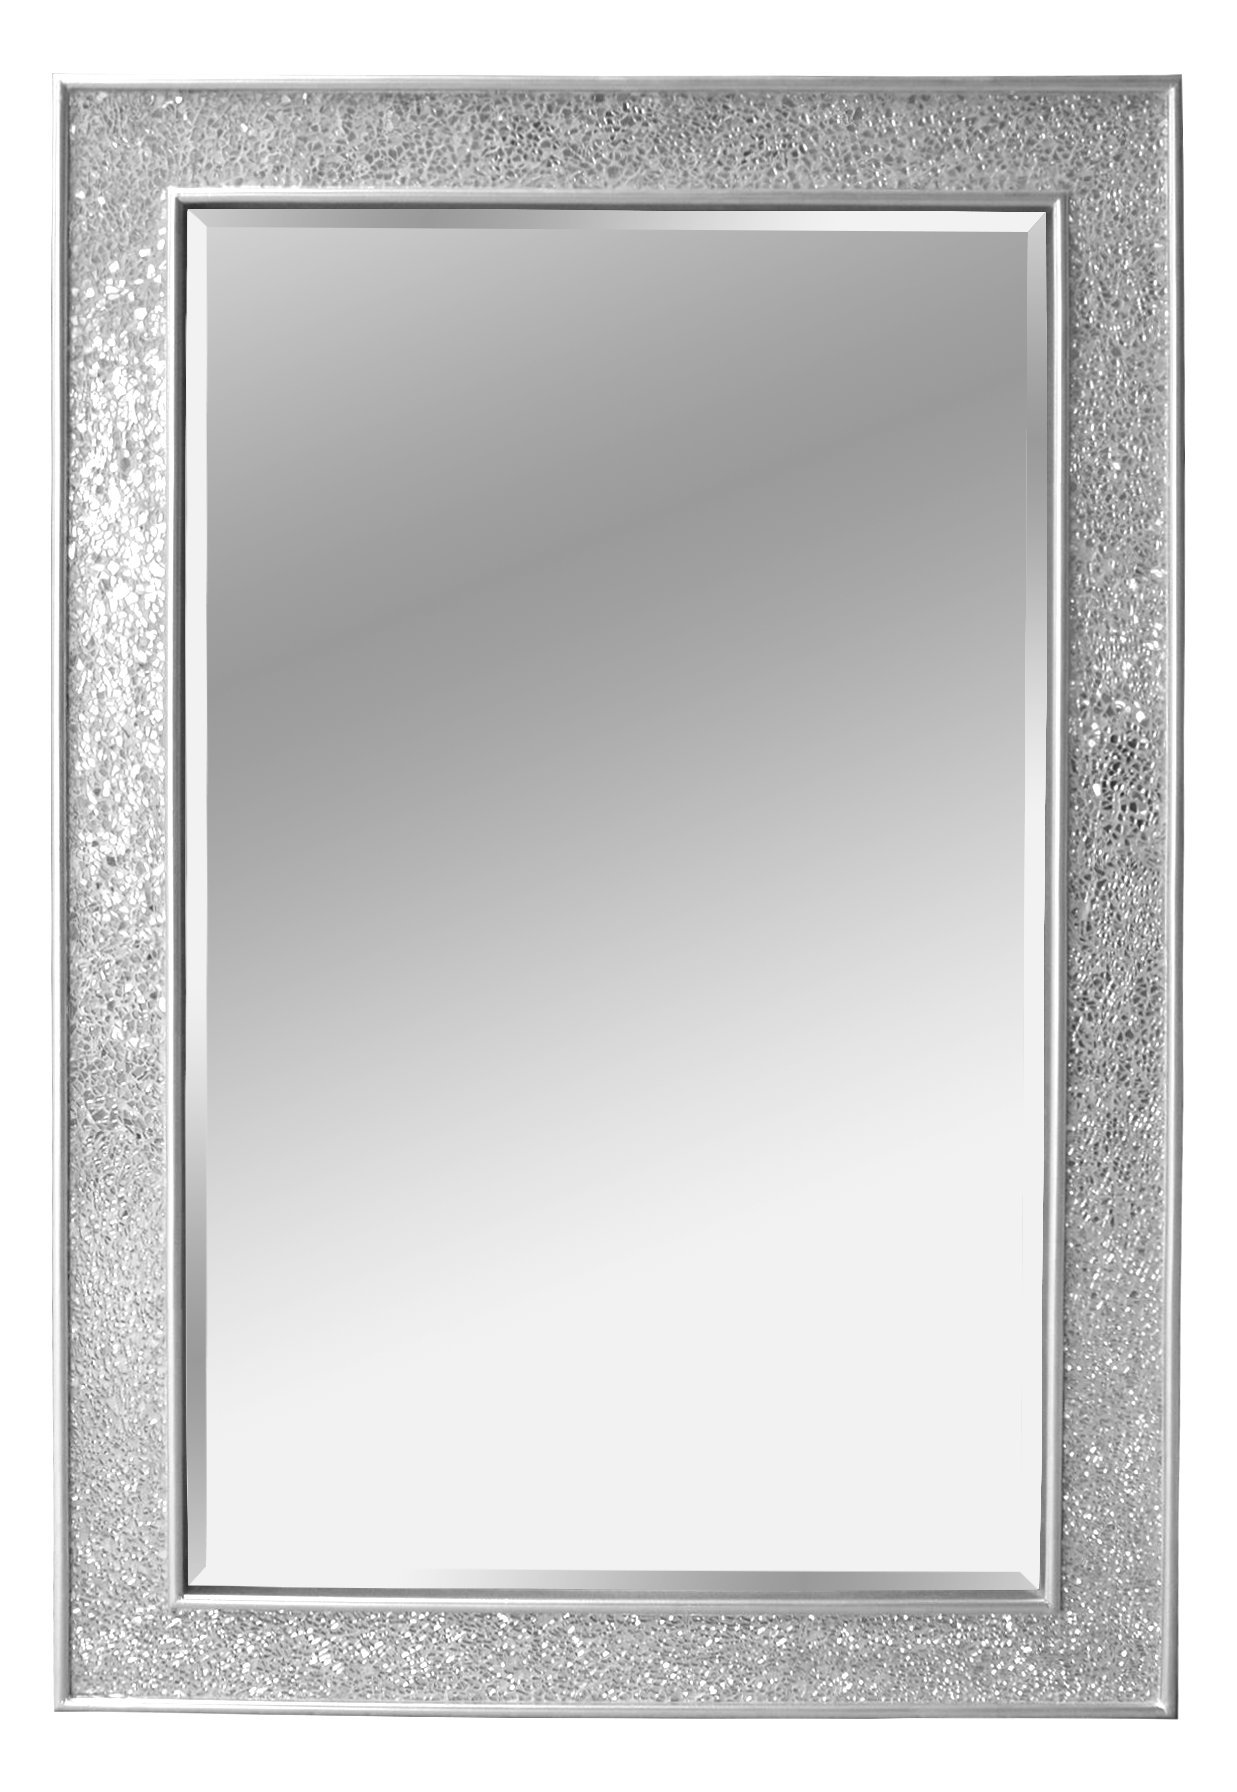 Mosaic silver wall mirror large 90x60 centimeters for Miroir 90x60